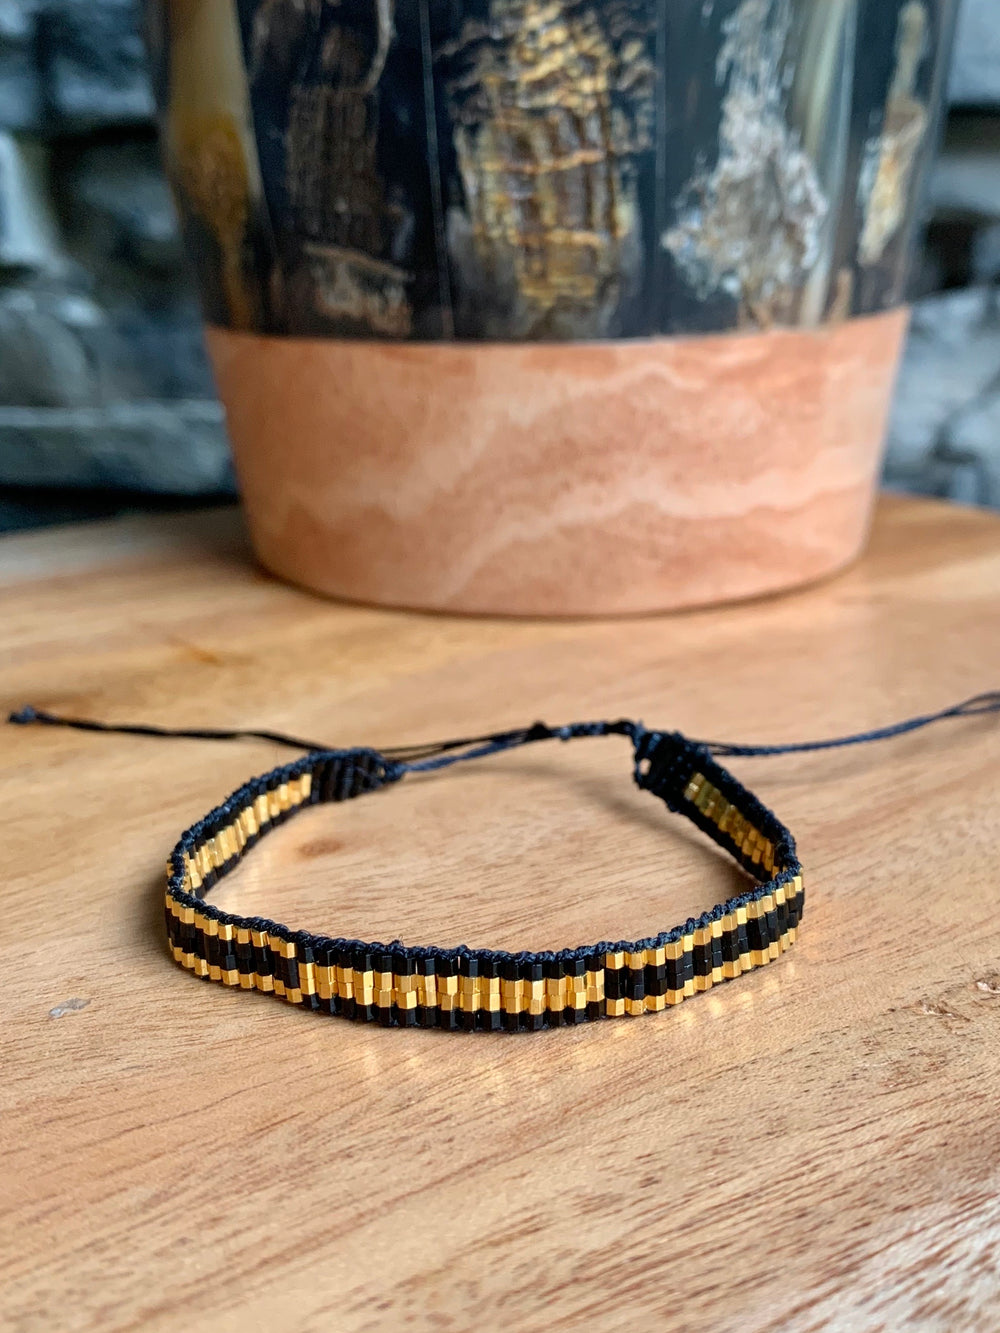 Dazzle Bracelet by Vi Bella from Haiti